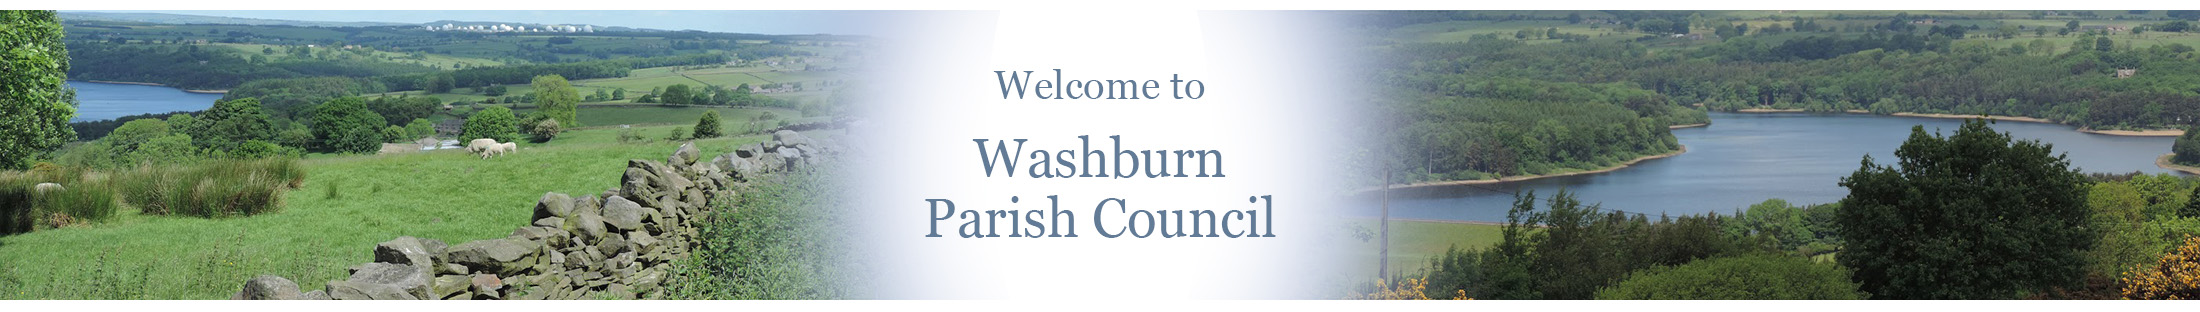 Header Image for Washburn Parish Council